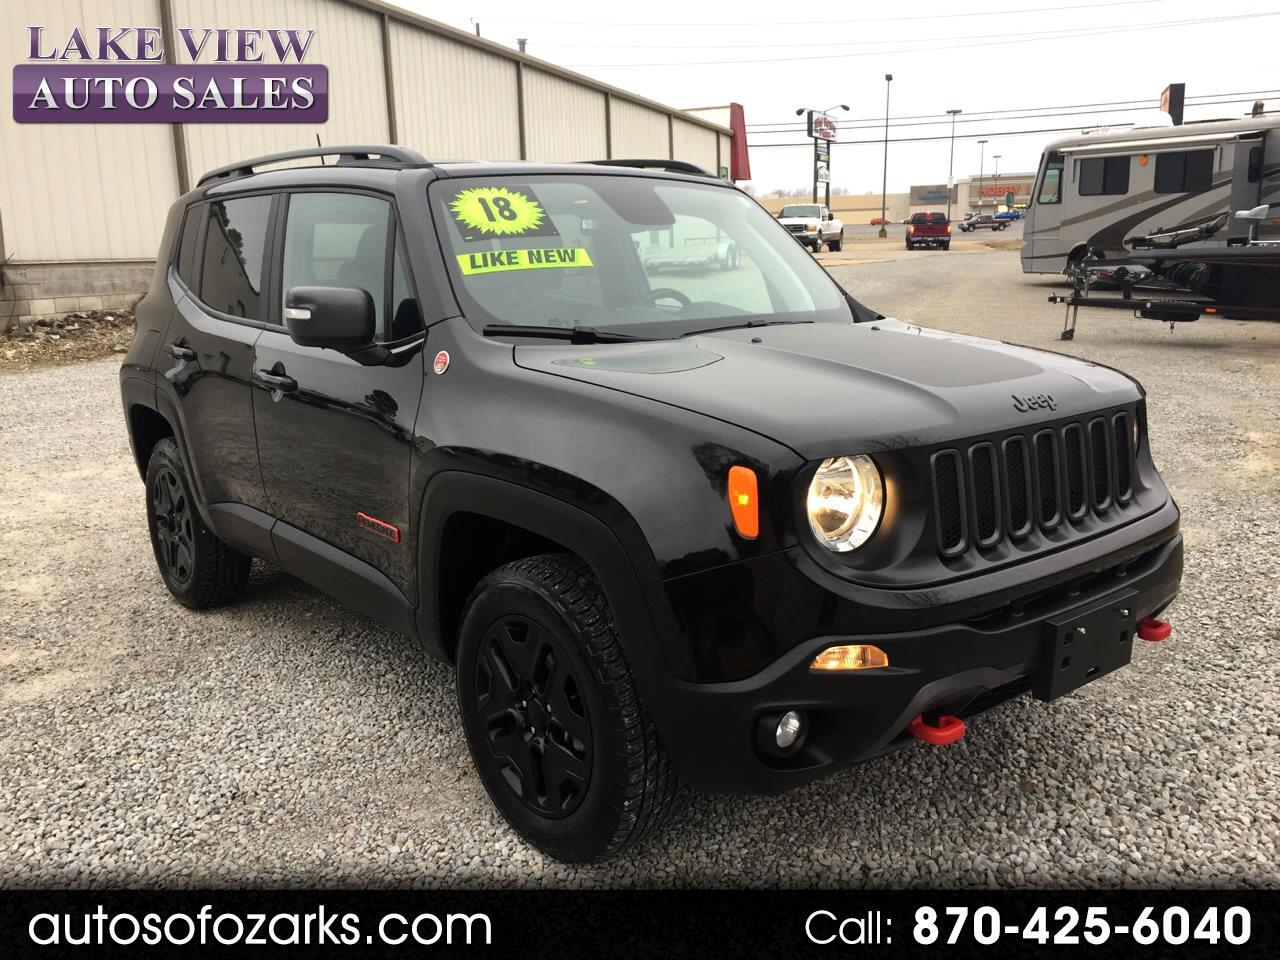 2018 Jeep Renegade Trailhawk 4x4